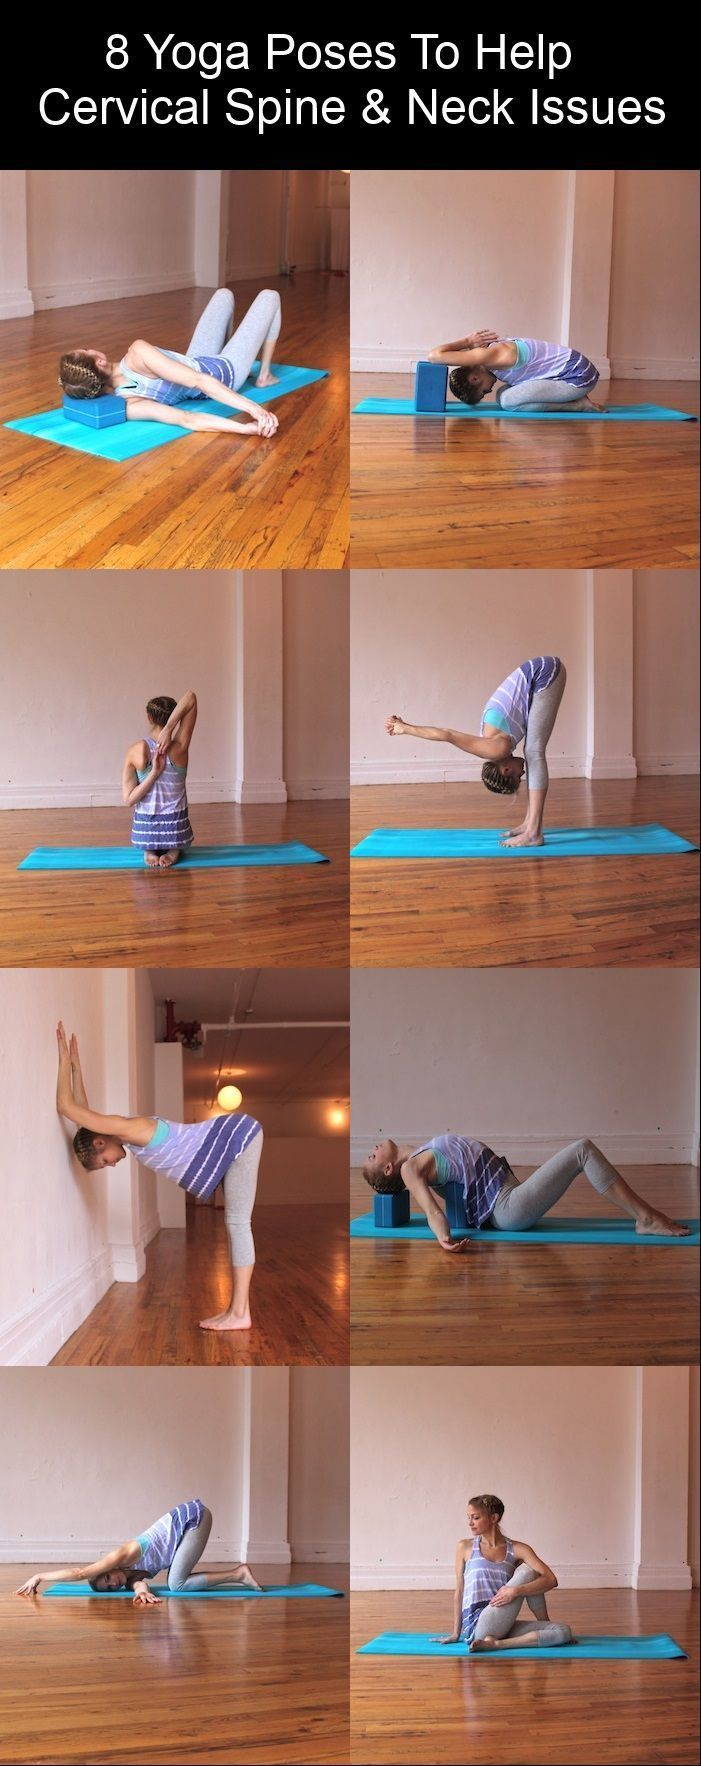 8 Yoga Poses To Help Cervical Spine Neck Issues Yoga Poses Yoga Moves Yoga Fitness